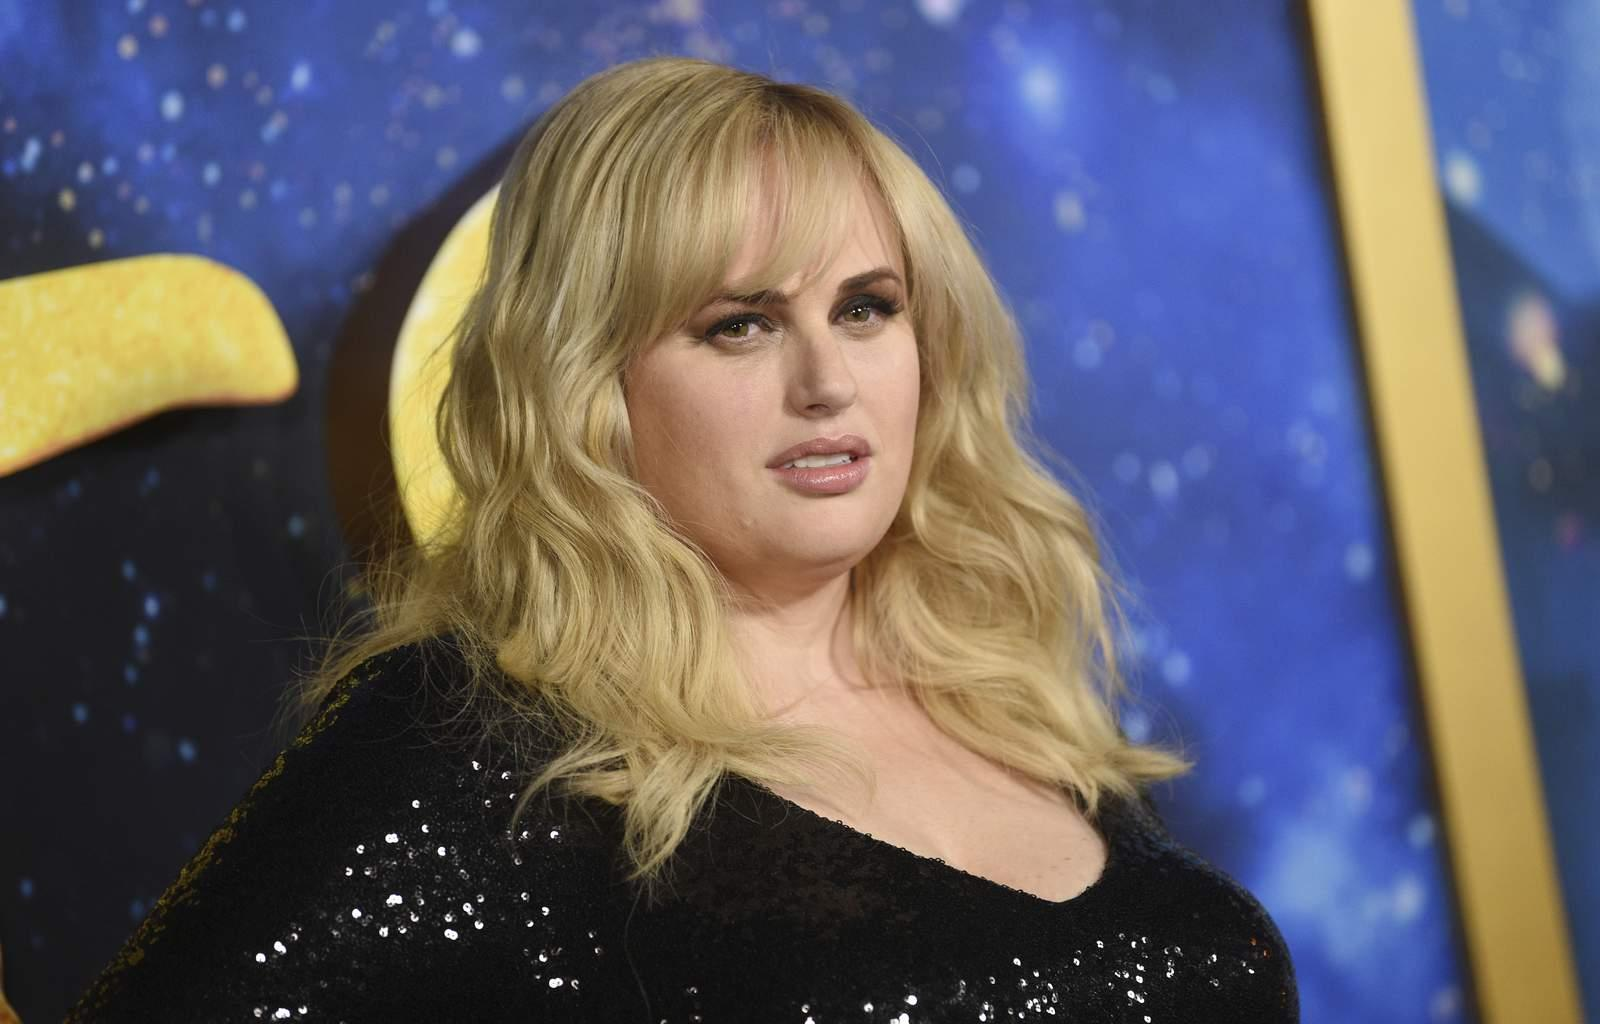 Rebel Wilson Shows Off Her Weight Loss In Stunning All Black Outfit!